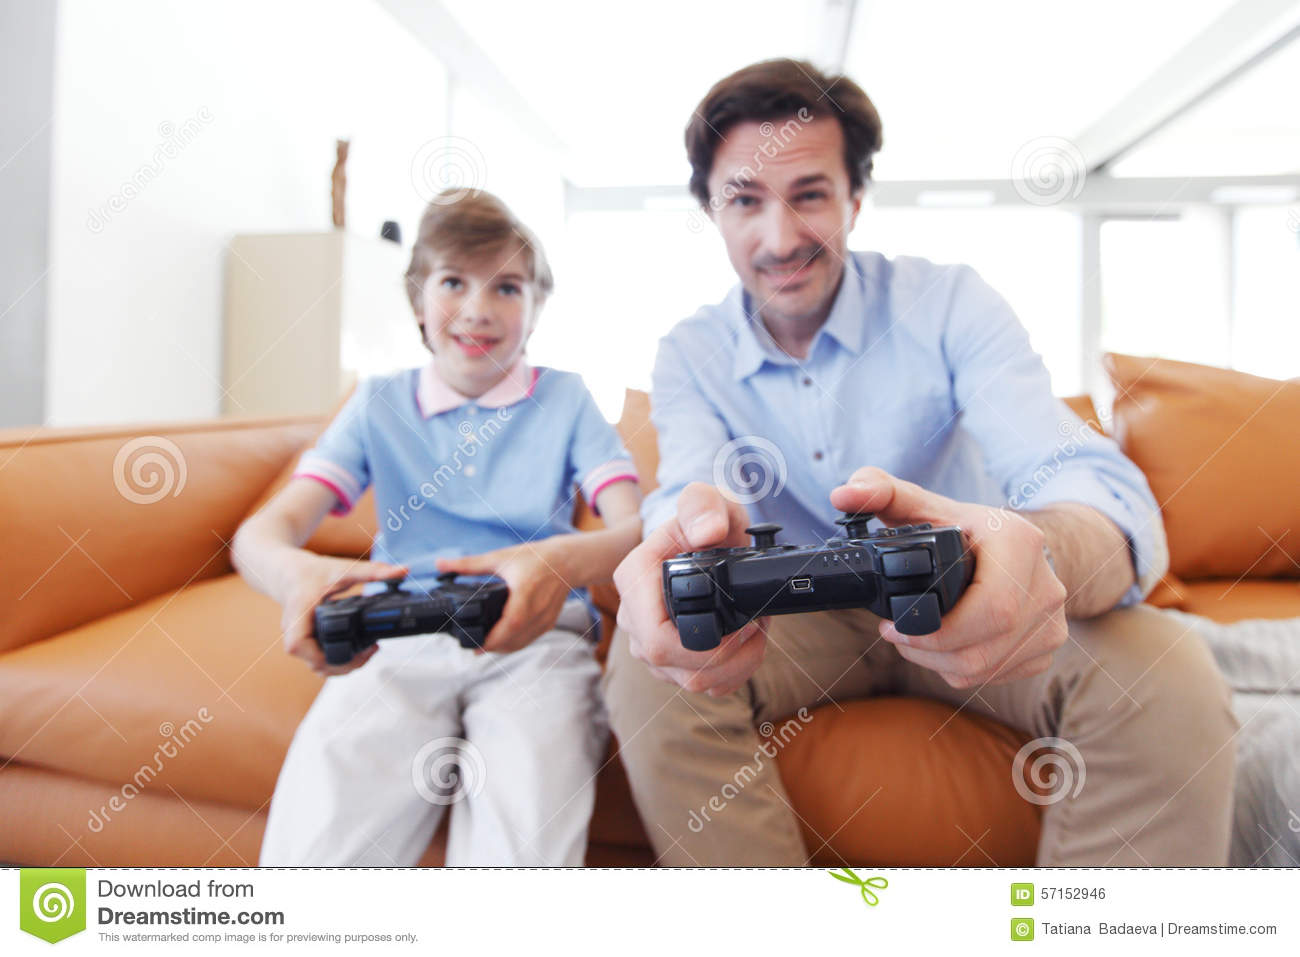 how to play father and son